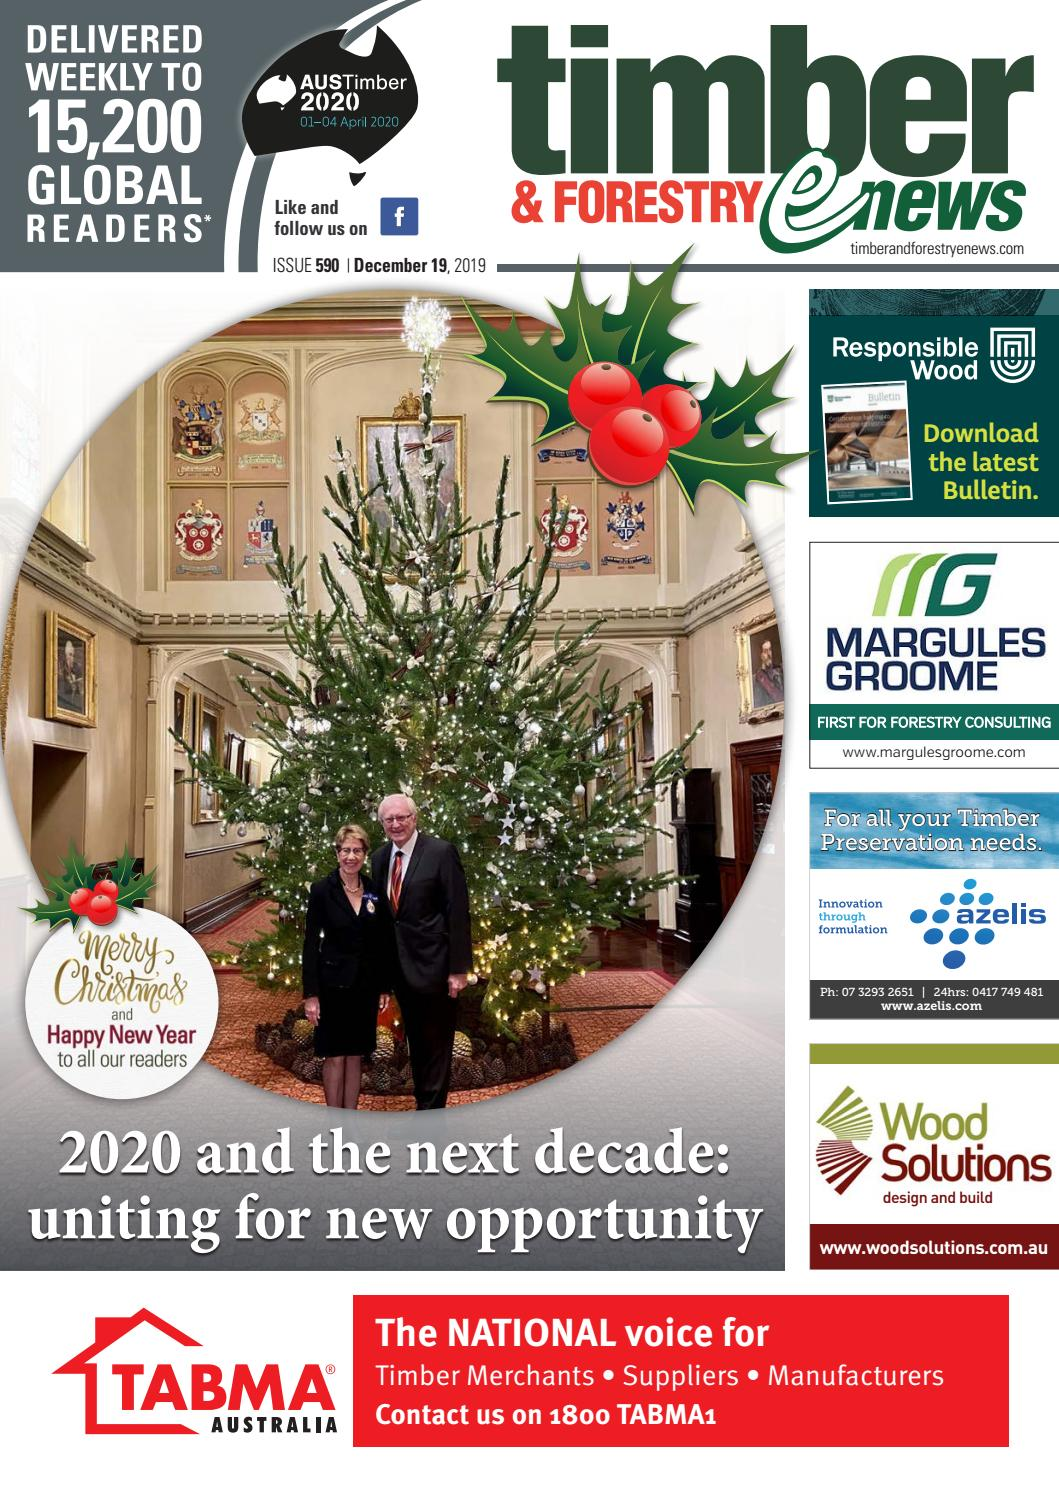 Ticked Off Vic 2020 Christmas Tree Issue 590 by timberandforestryenews   issuu